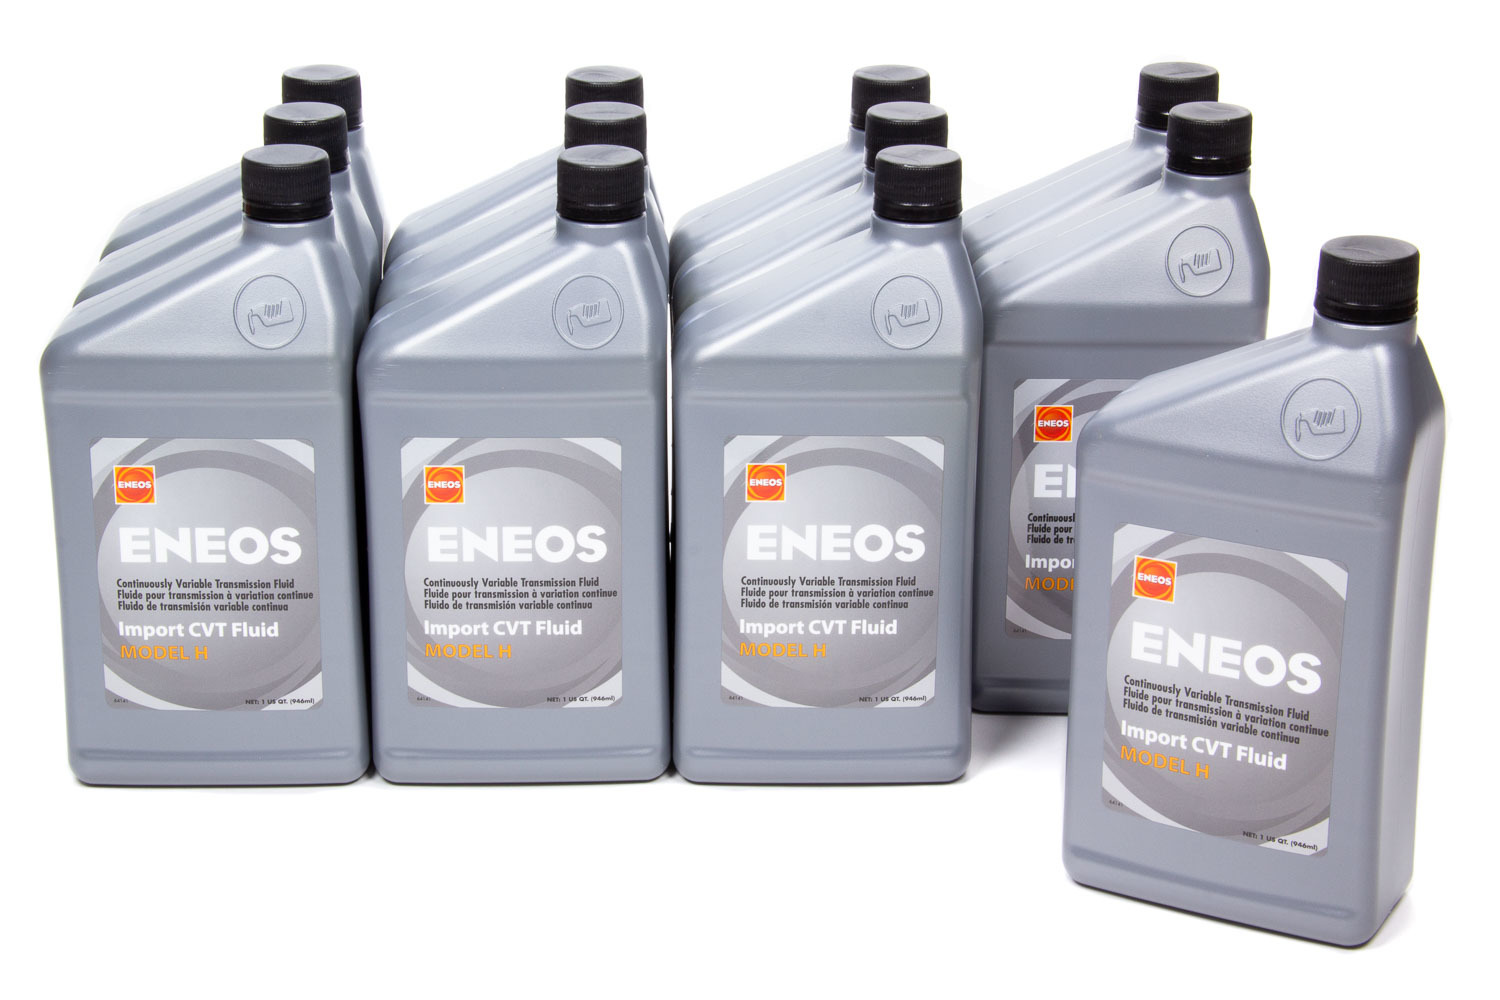 Eneos 3072-301 Transmission Fluid, Import CVT, Model H, Synthetic, 1 qt Bottle, Honda Continuously Variable Transmissions, Set of 12